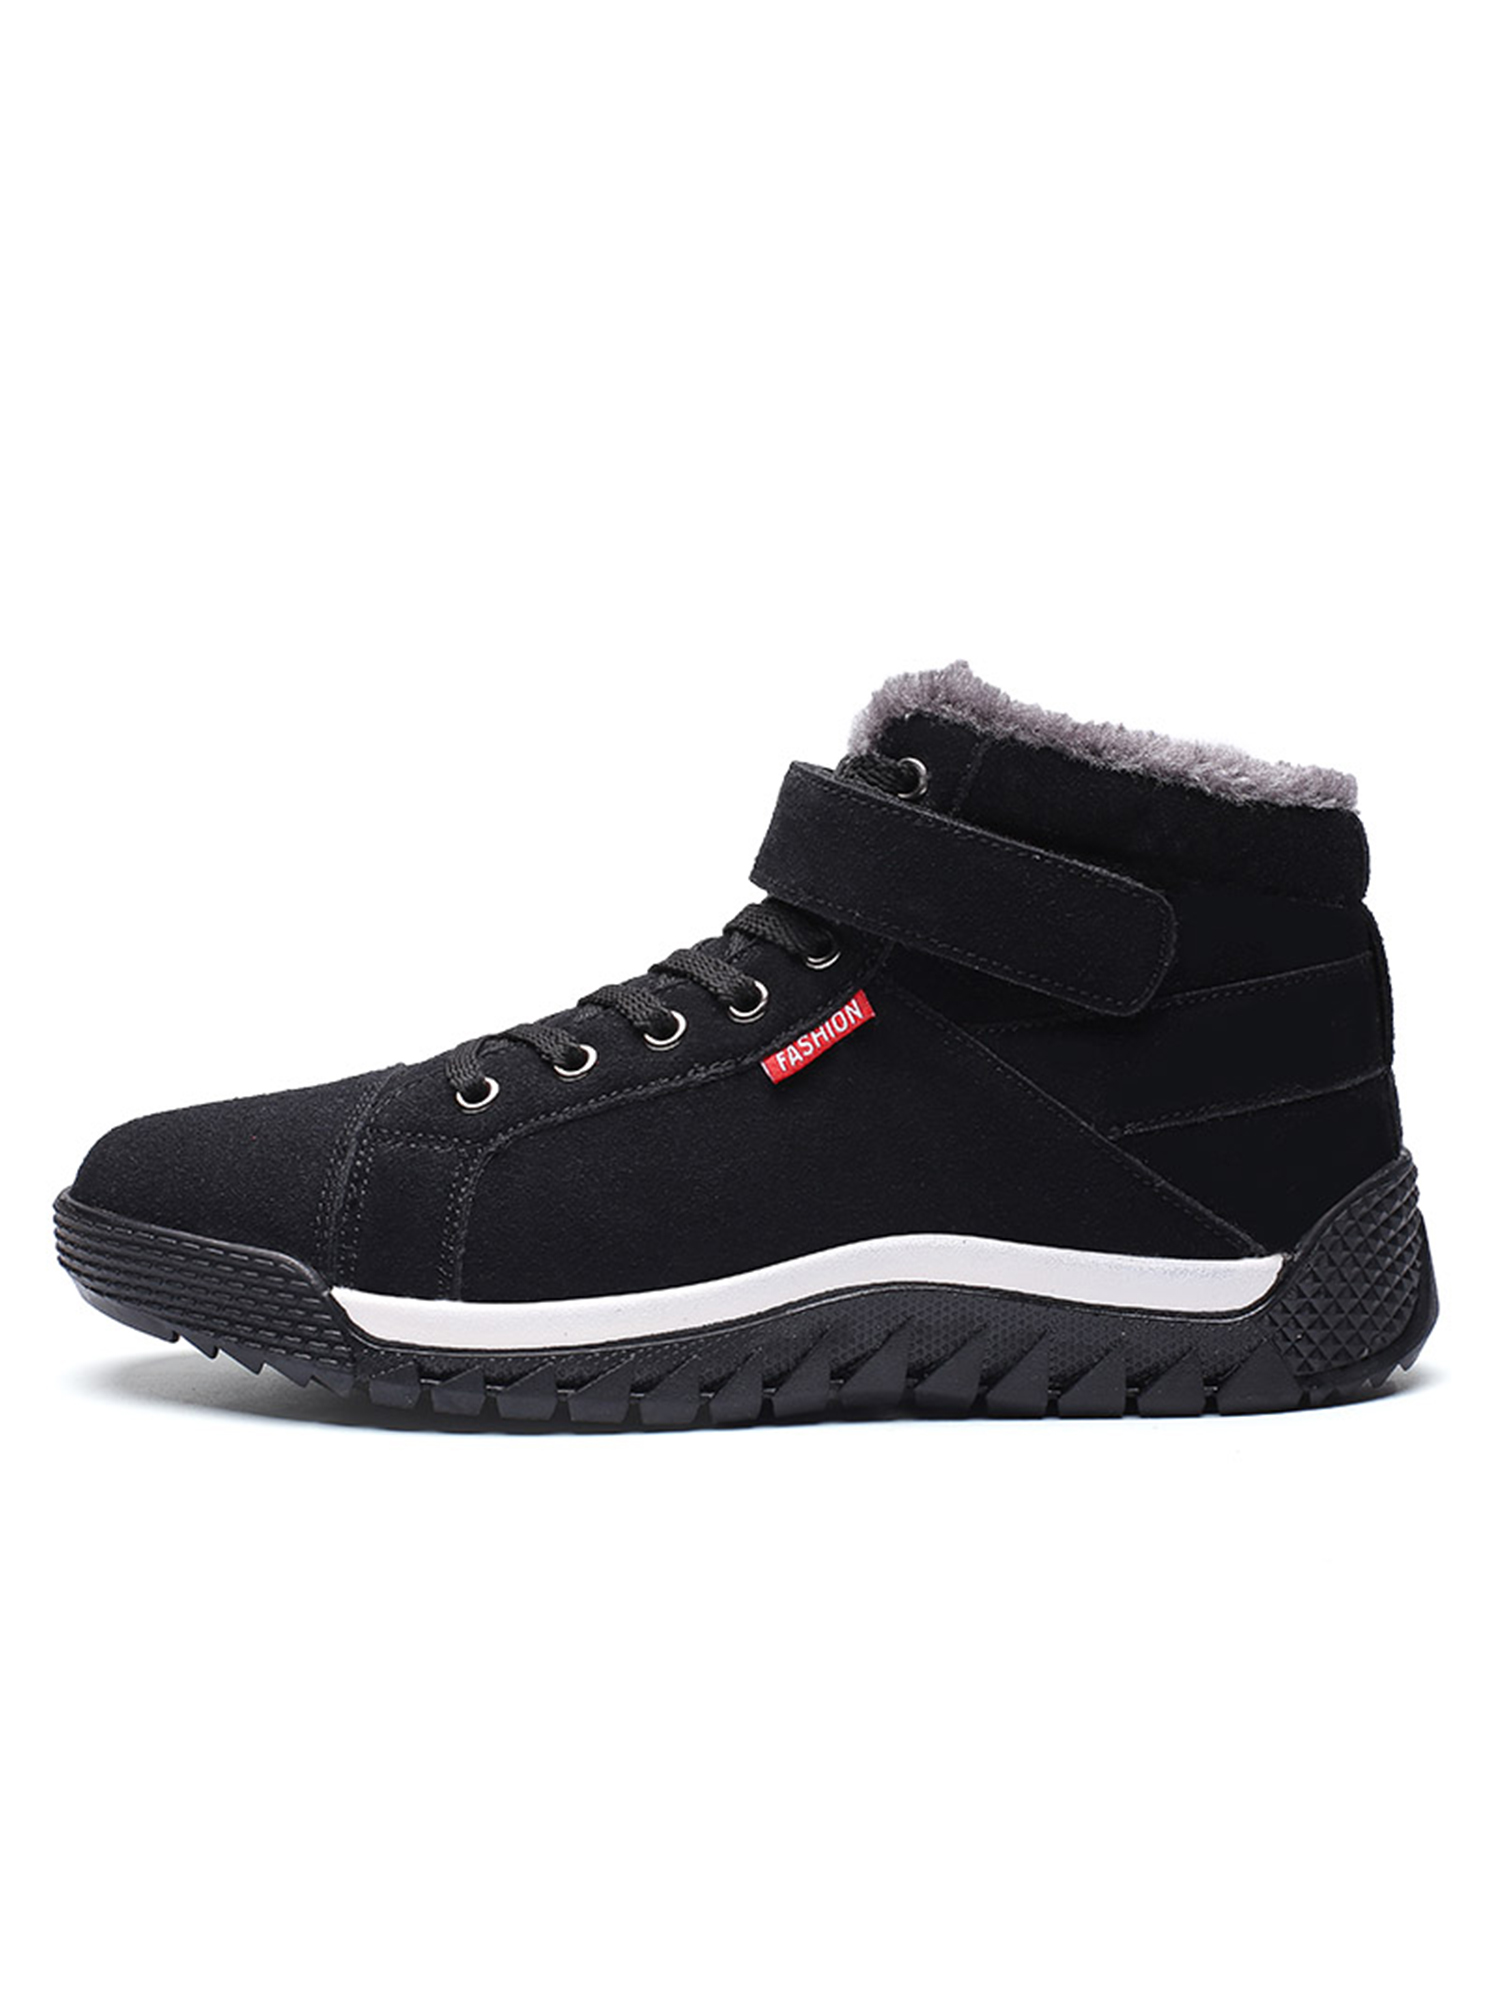 8623895b6497 Men Women Snow Boots Fur Lined Comfortable Warm Waterproof Sneakers High  Top Non-Slip Winter Outdoor Hiking Ankle Shoes